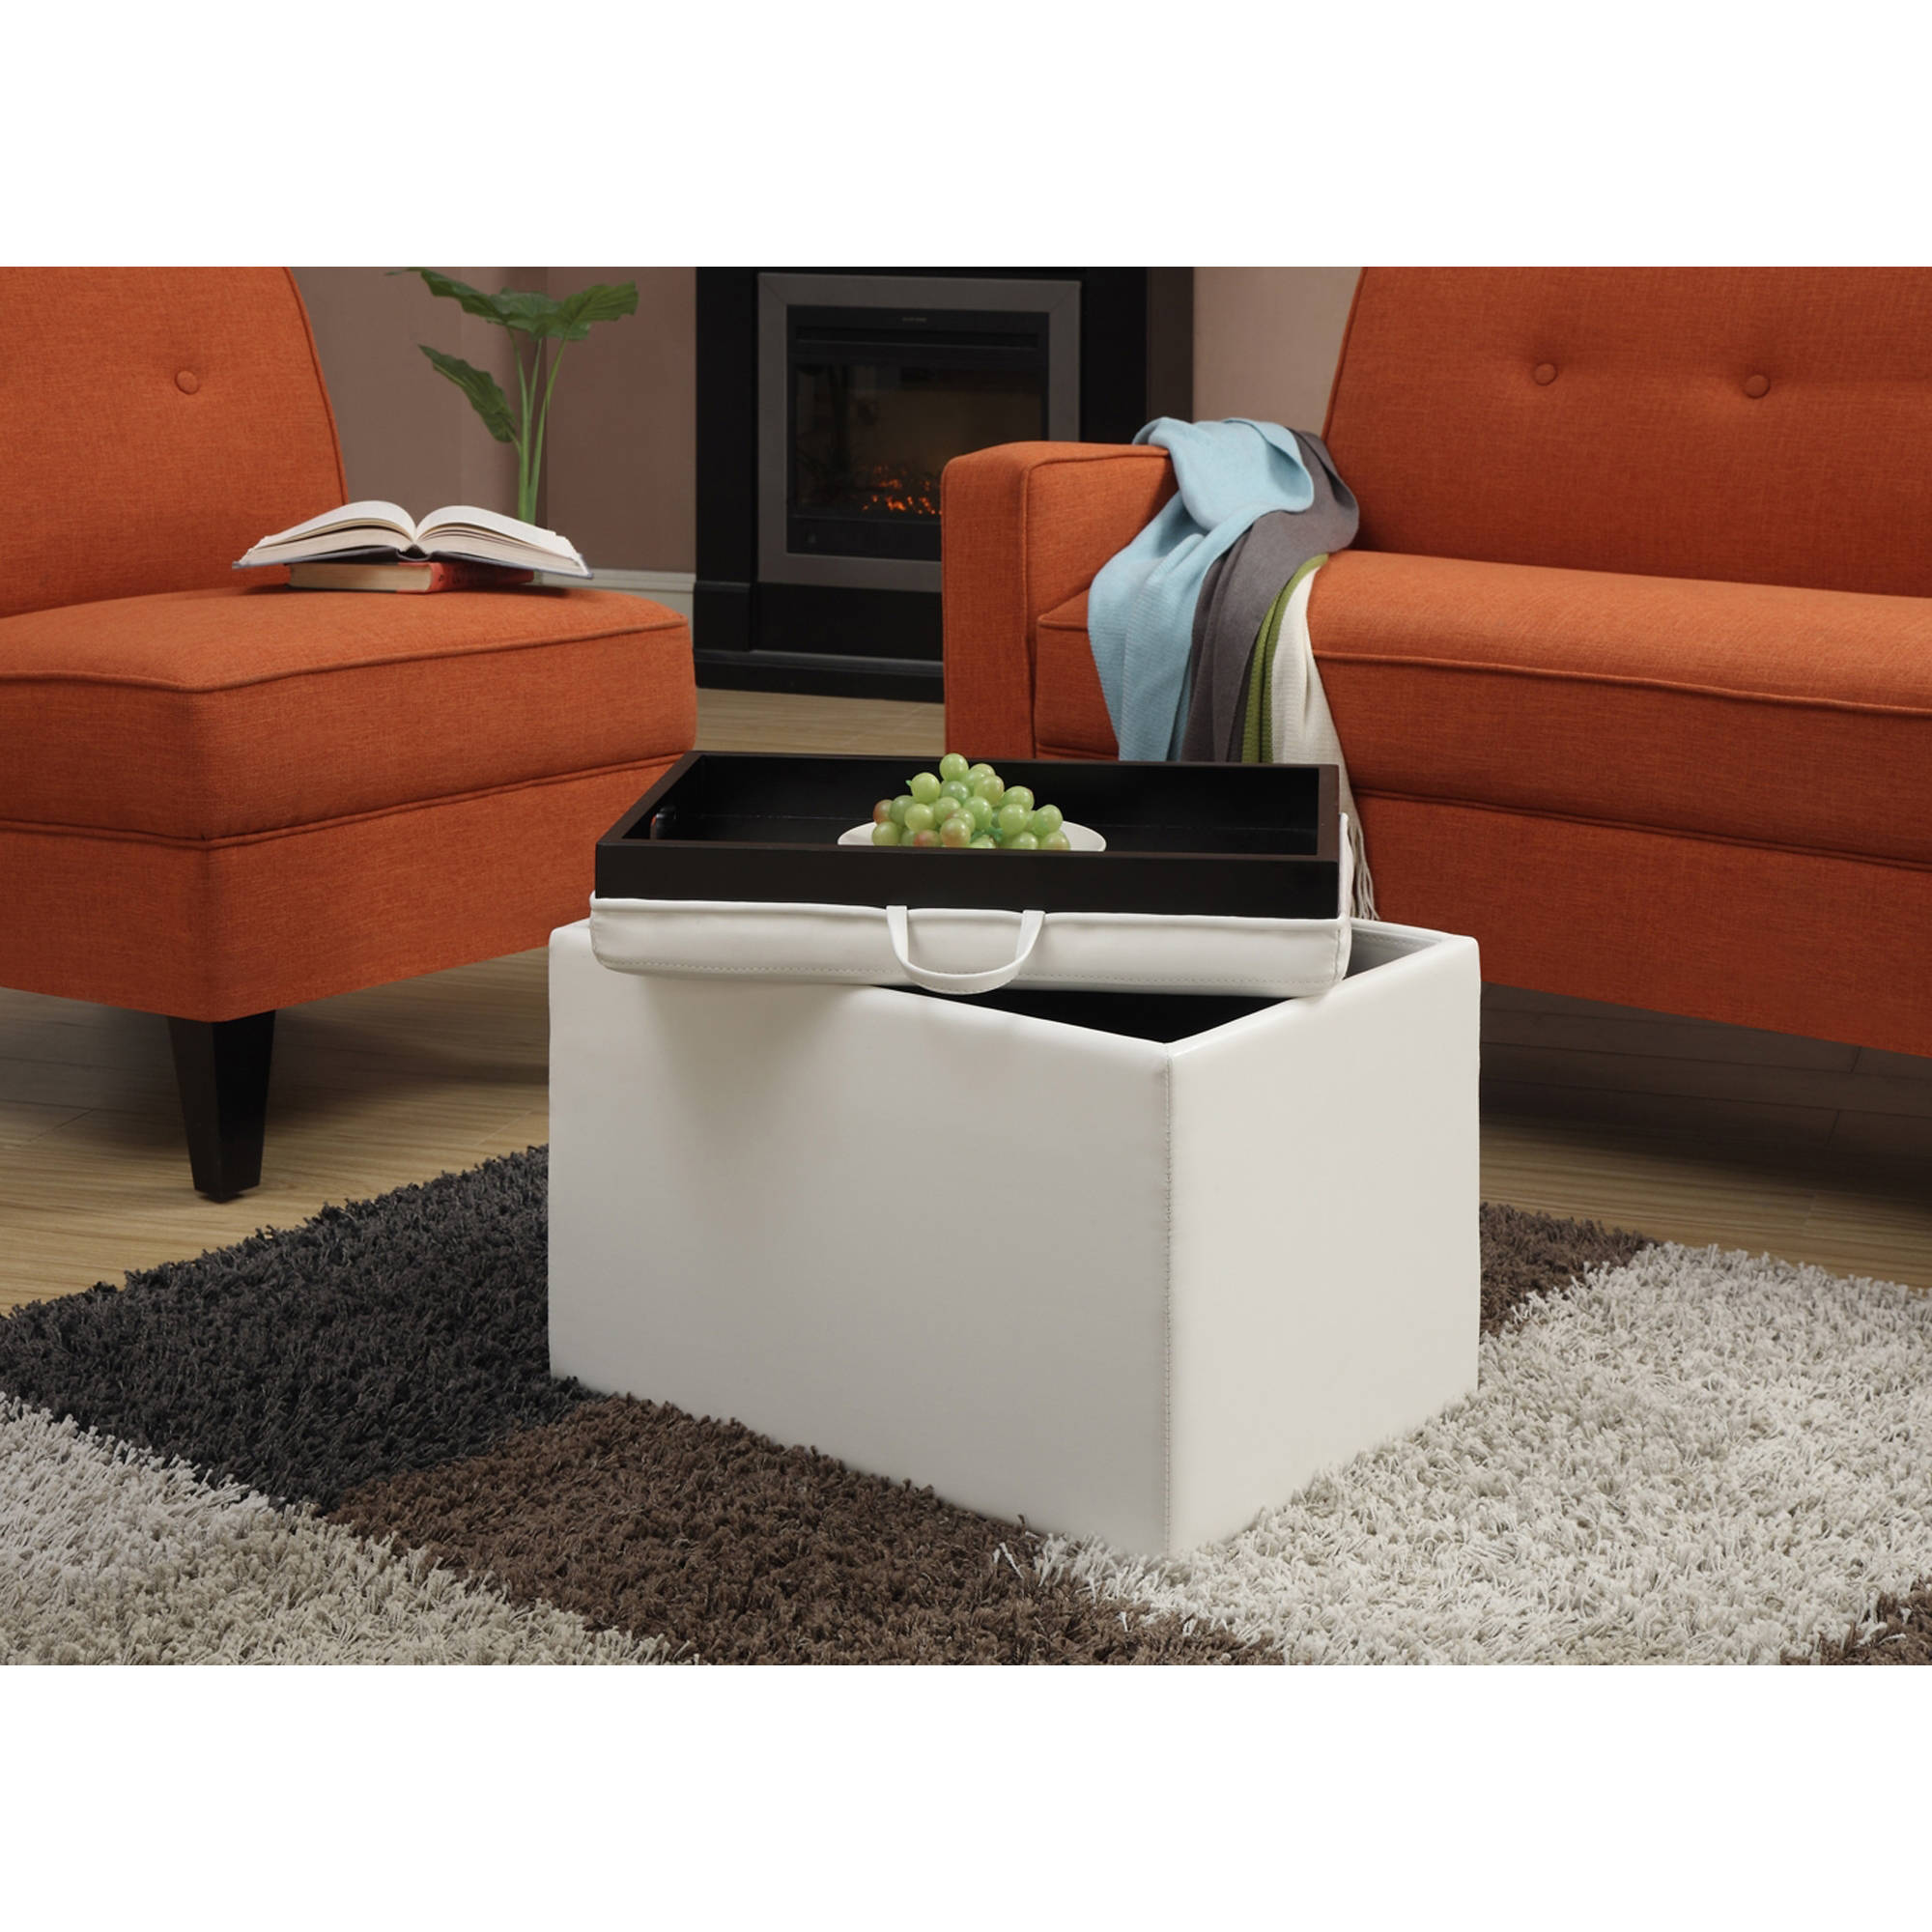 Coffee Table With Storage On Photo of Luxury